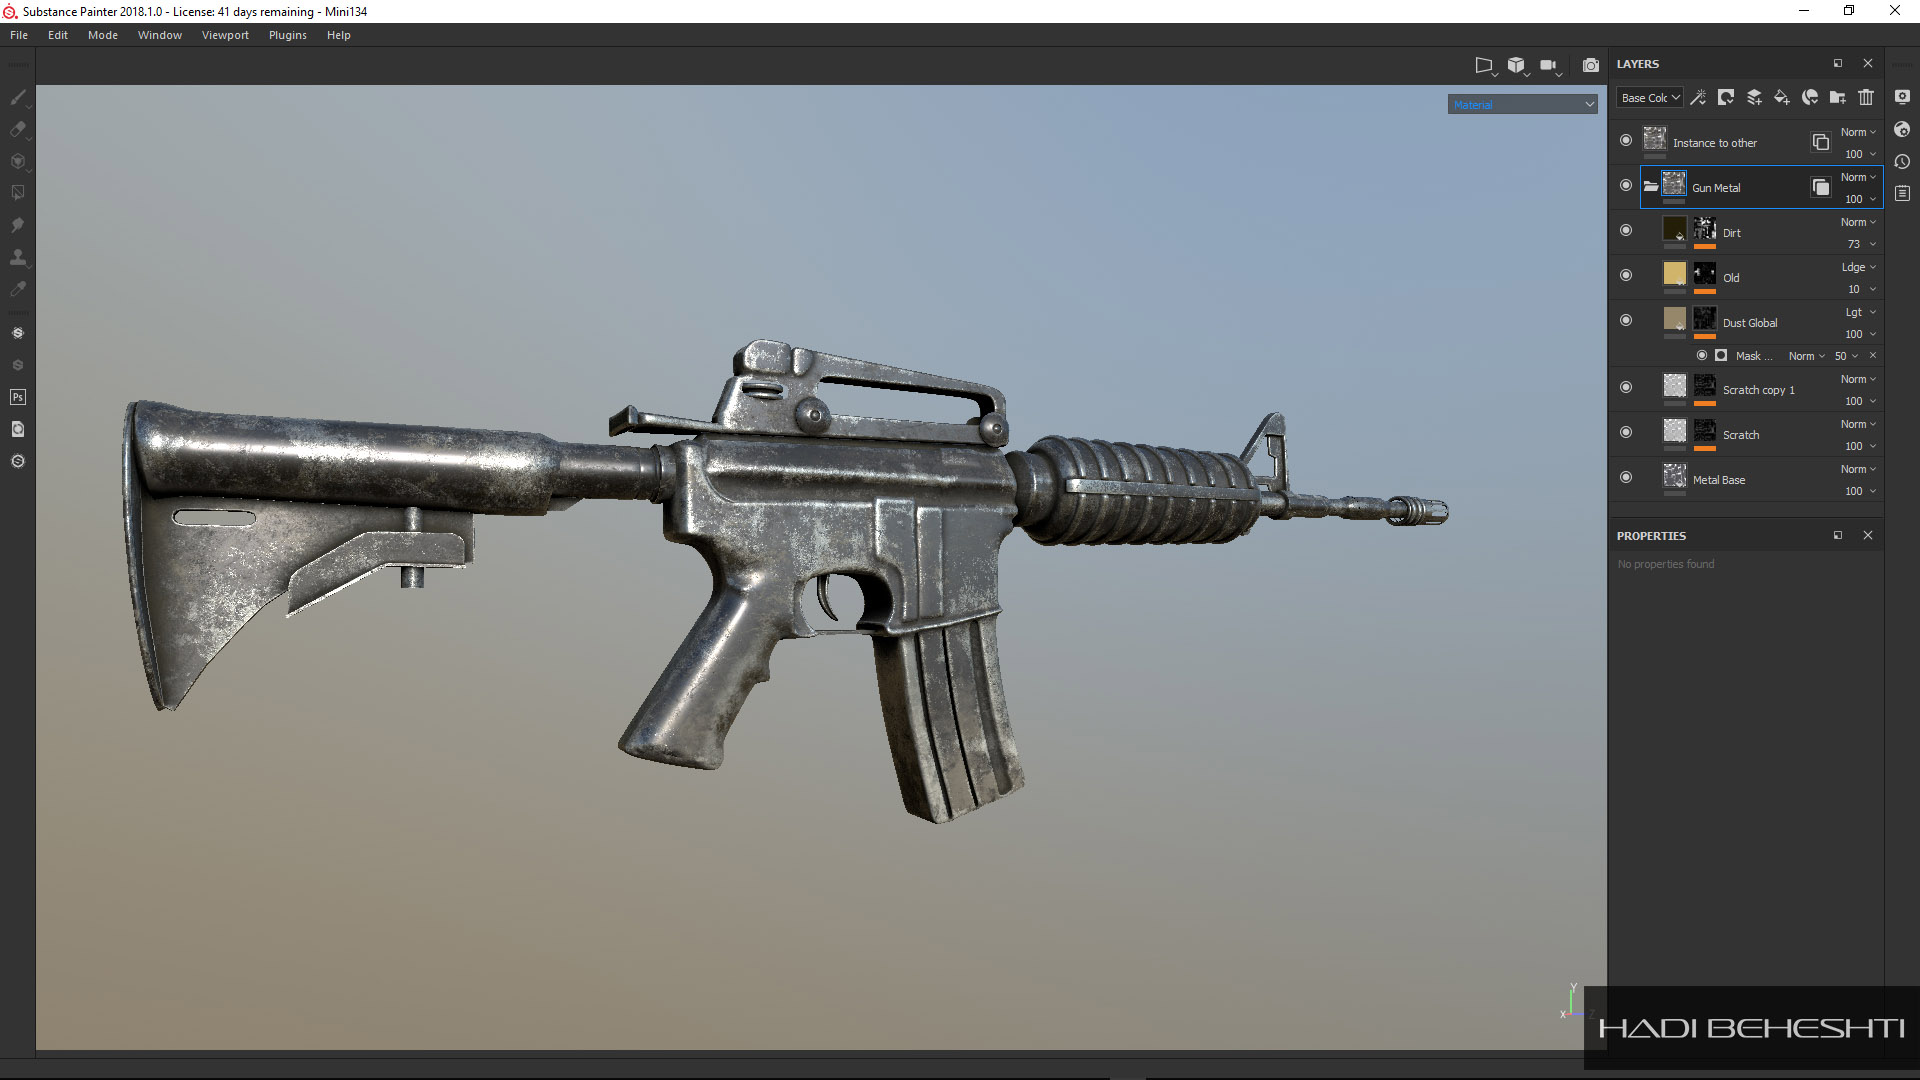 M4A1 Carbine_Modeling and Texturing by Hadi Beheshti-CG Artist-7